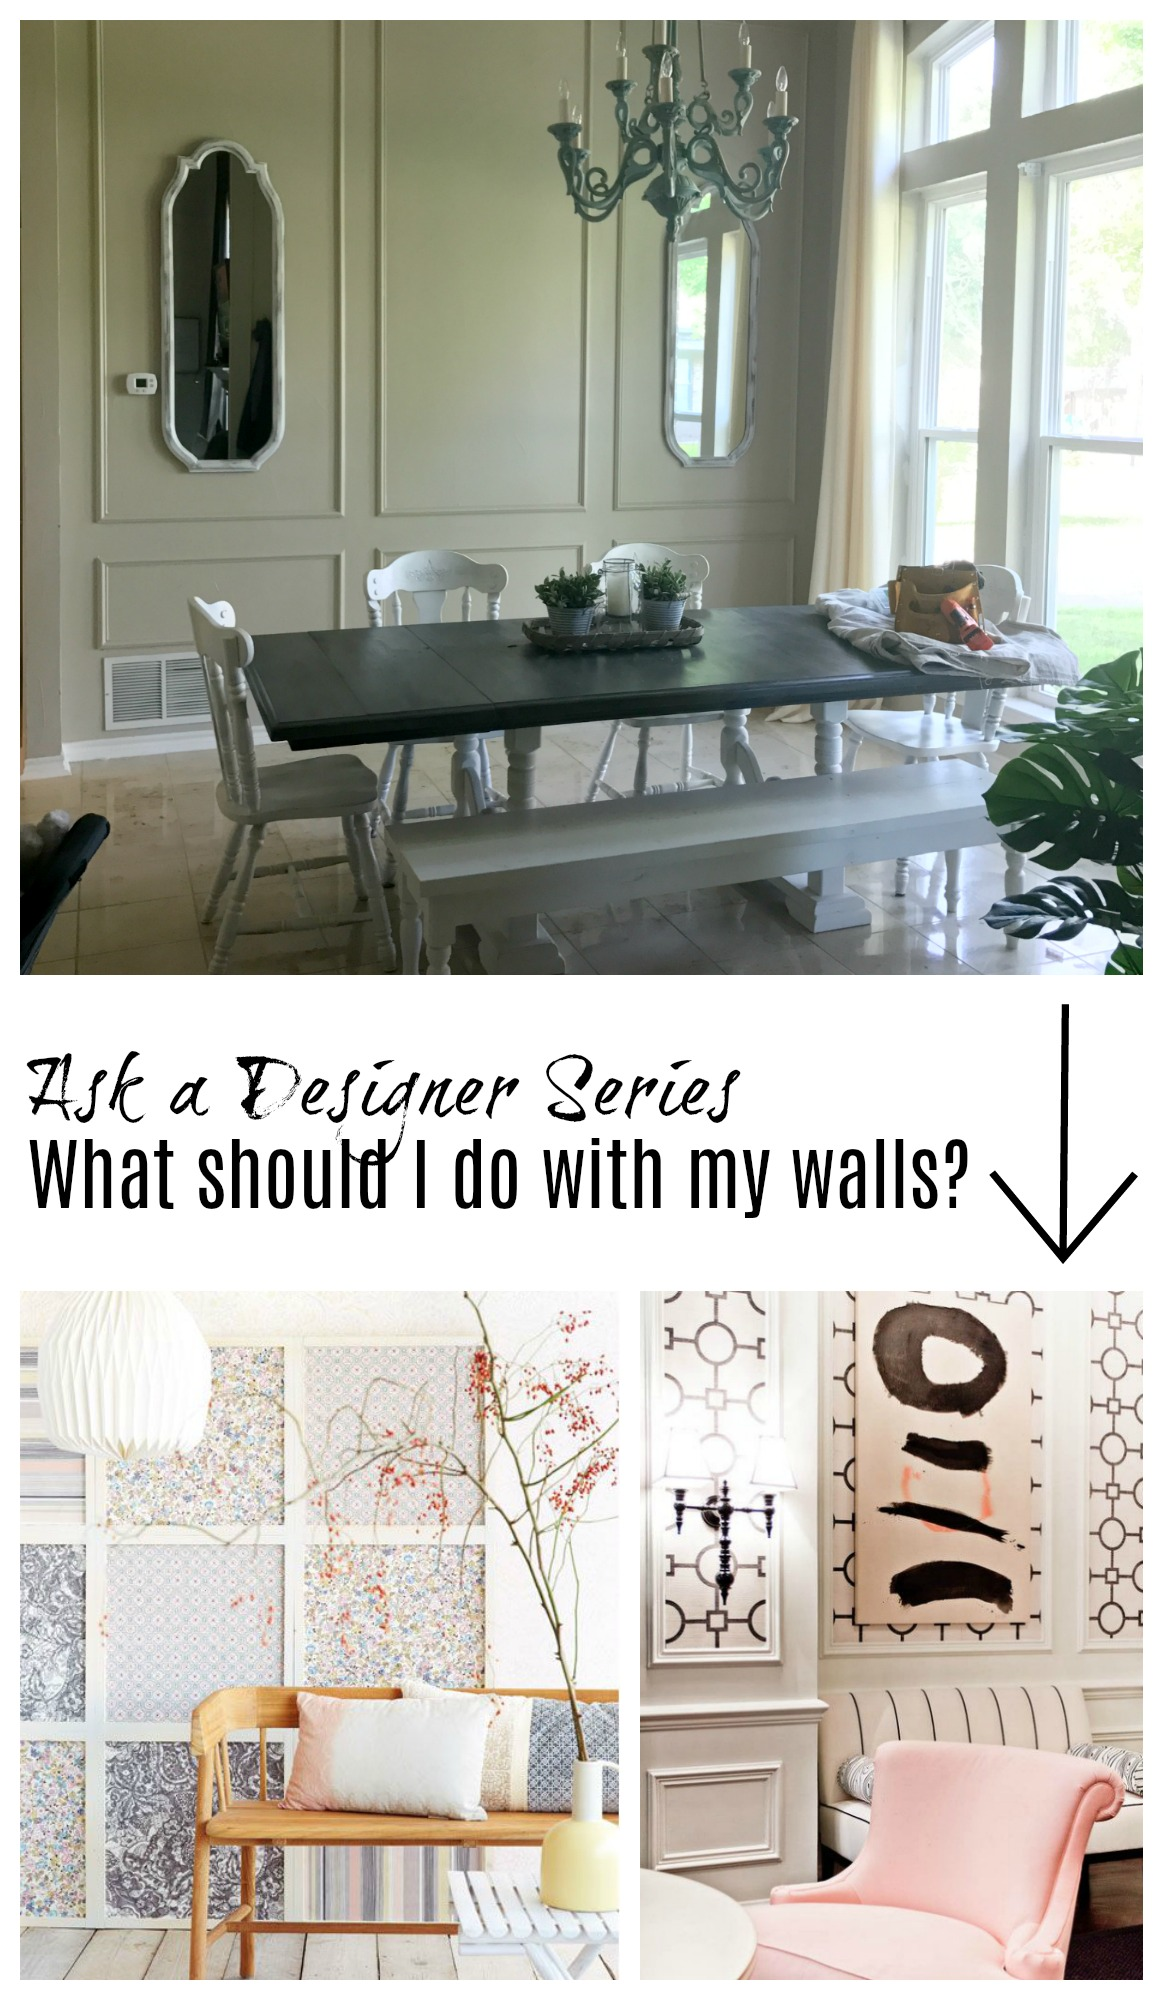 Ask a designer series- What shoudl I do with my wainscoting?